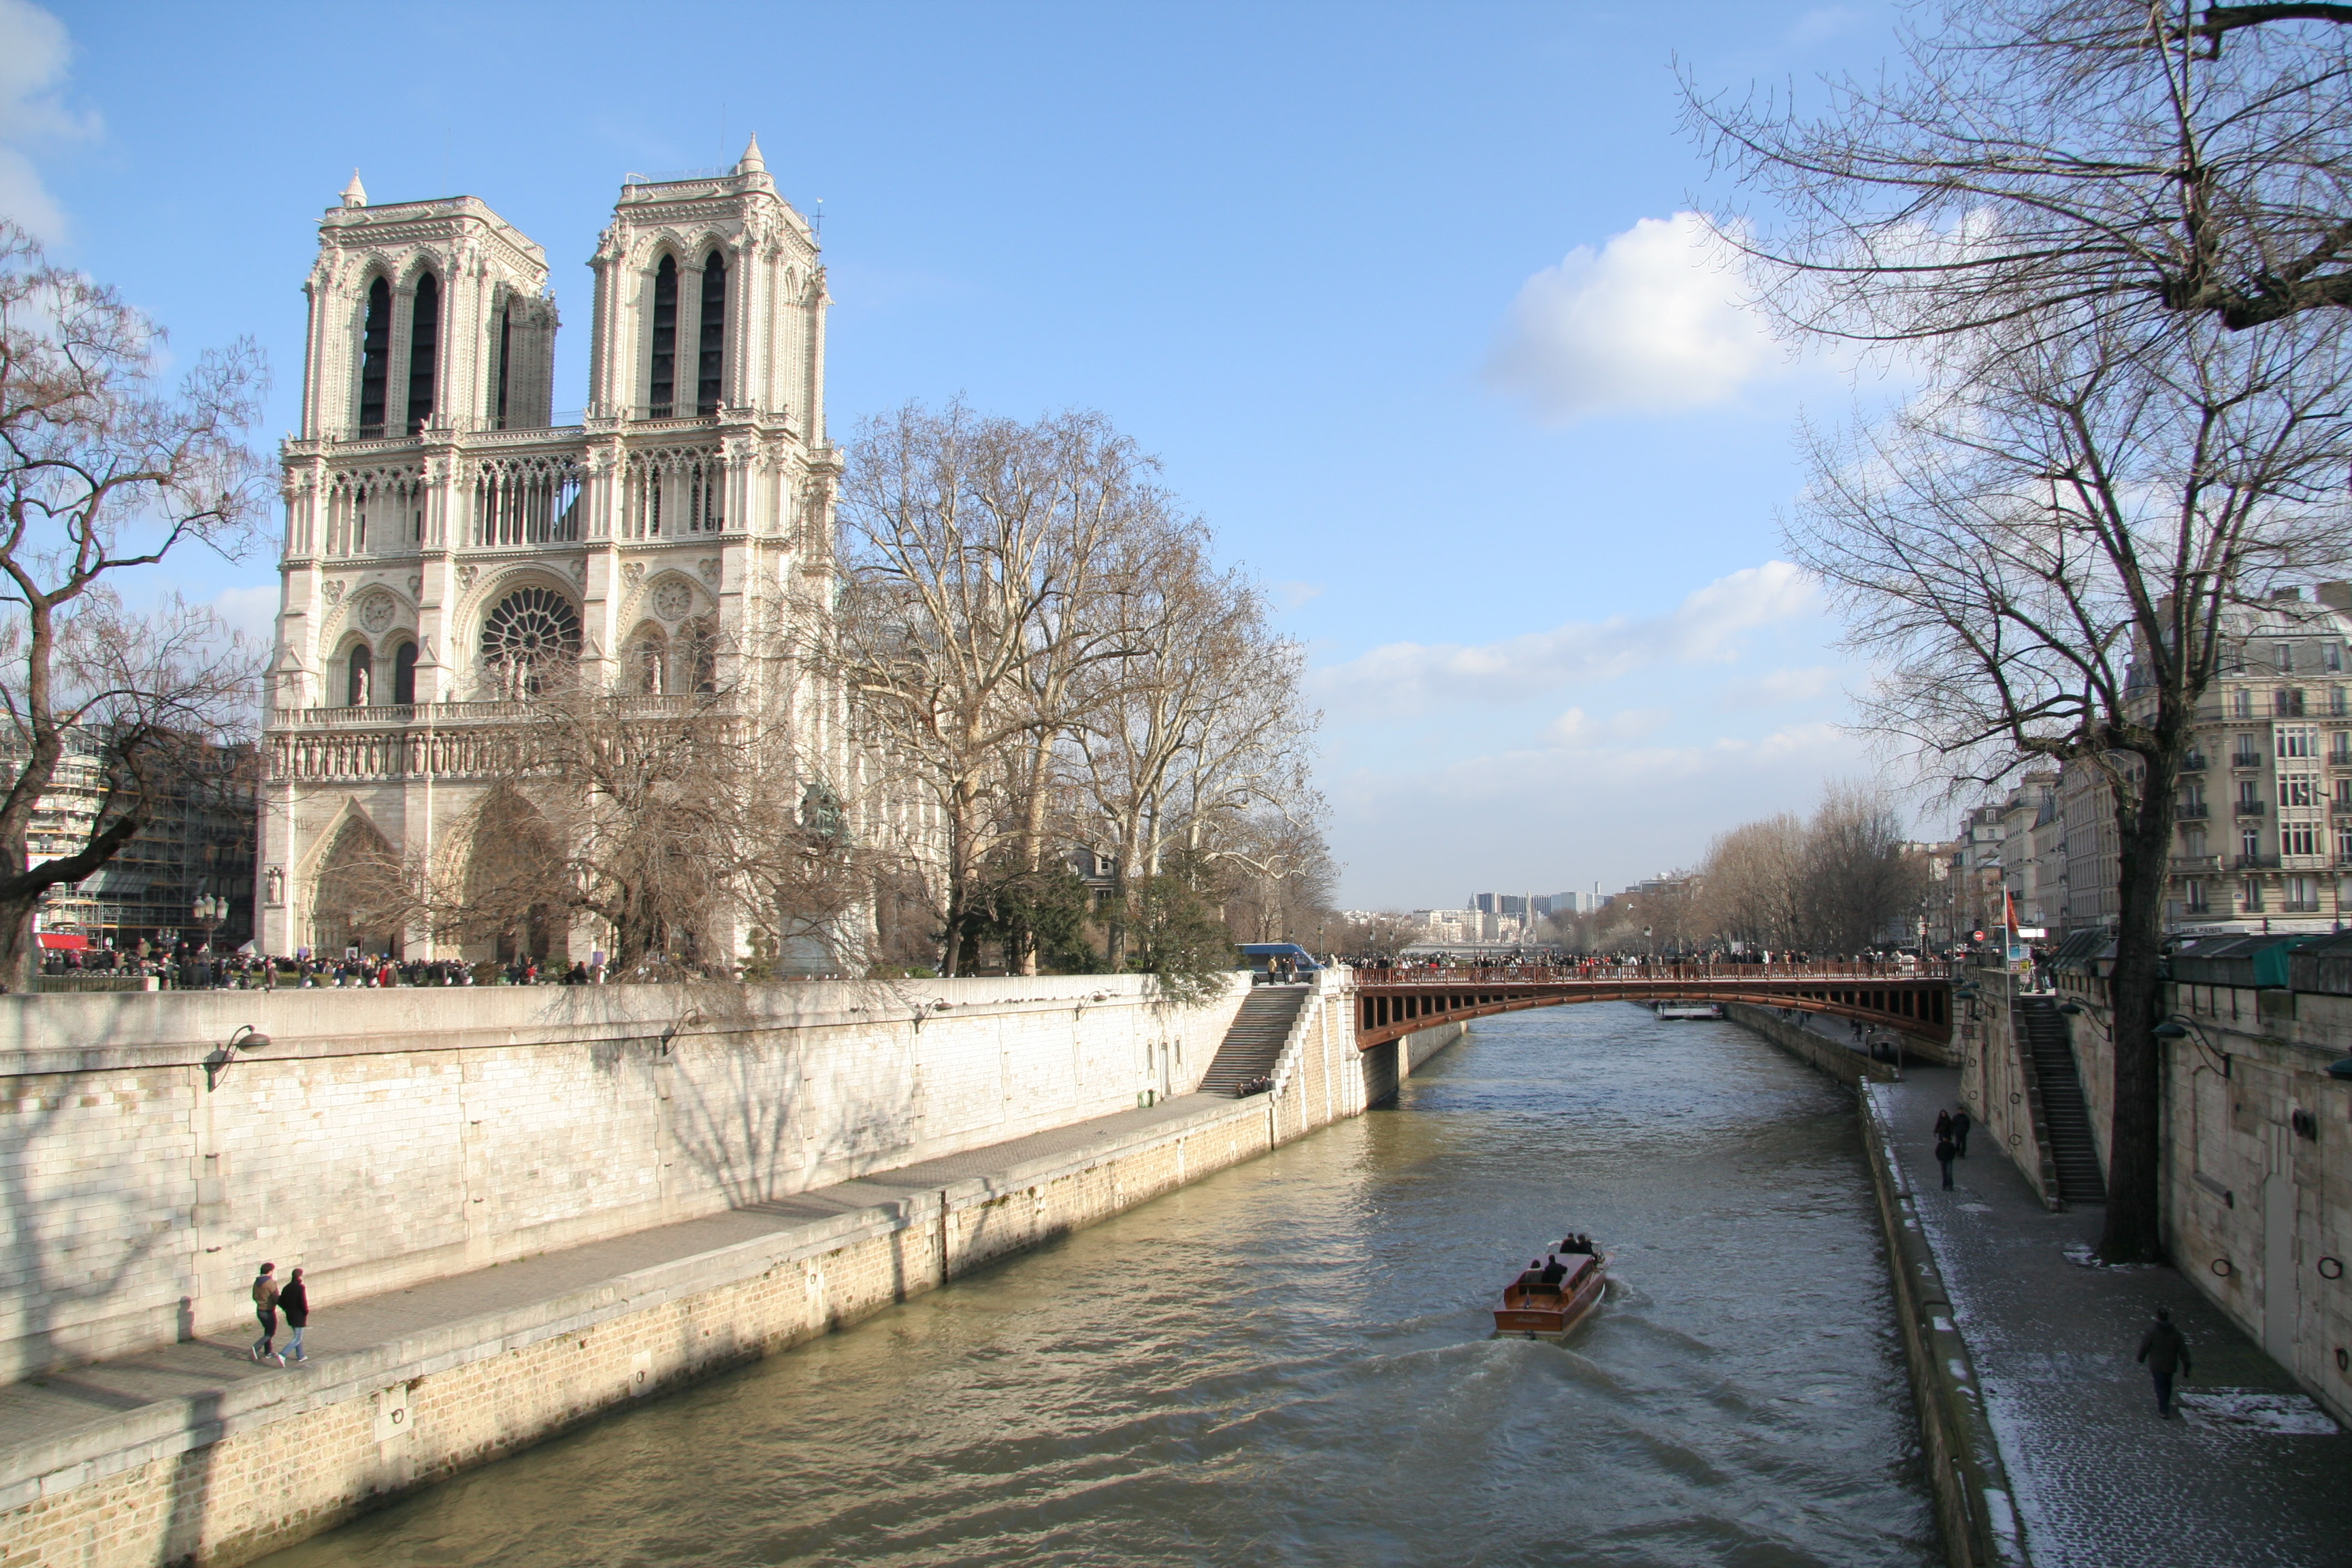 Notre Dame Cathedral from the Seine River